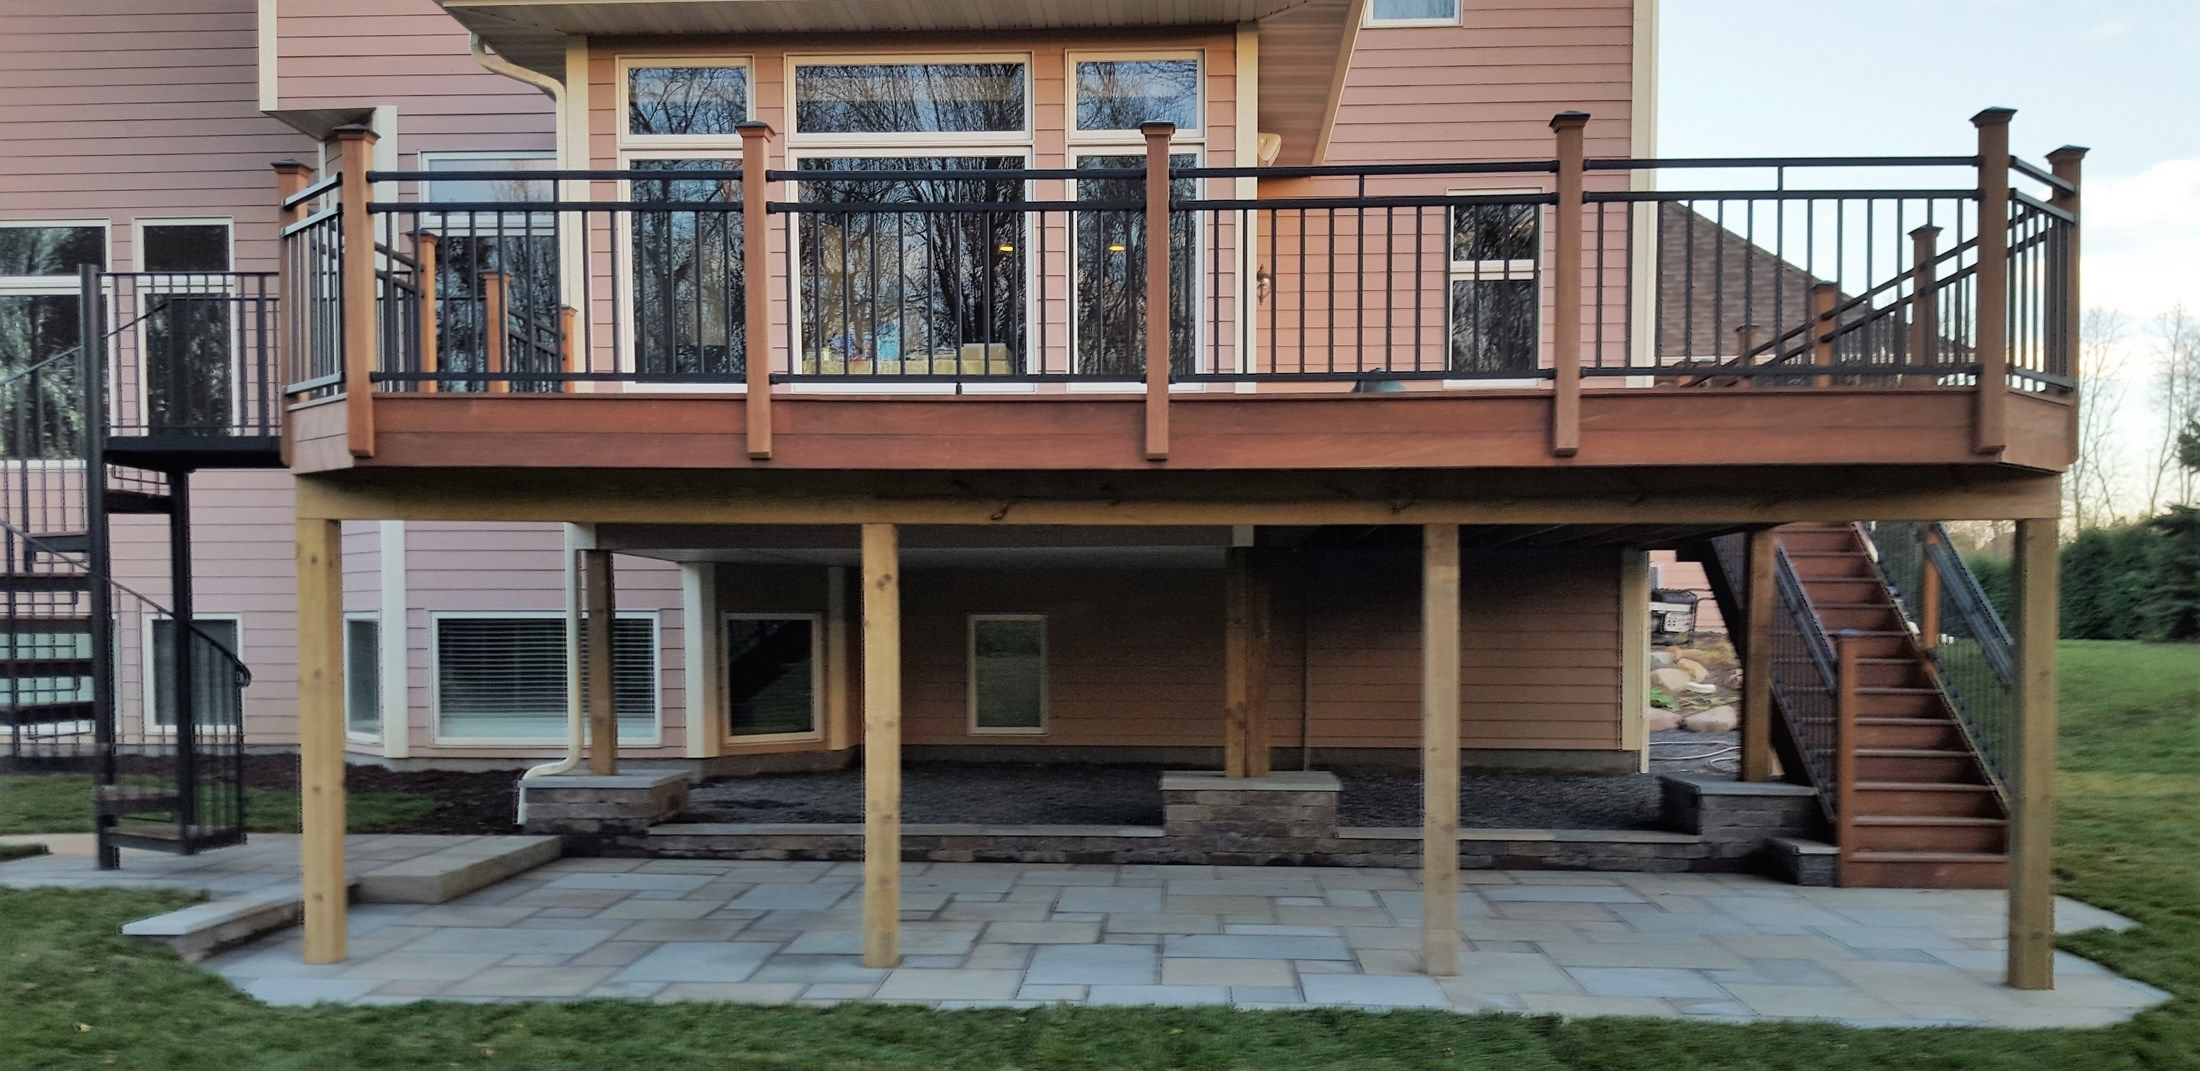 Deck With Spiral Stair Case Picture 6449 Decks Com | Outdoor Spiral Staircase For Deck | 36 Inch Diameter | Small Footprint | Steel | Balcony Outdoor | 2 Story